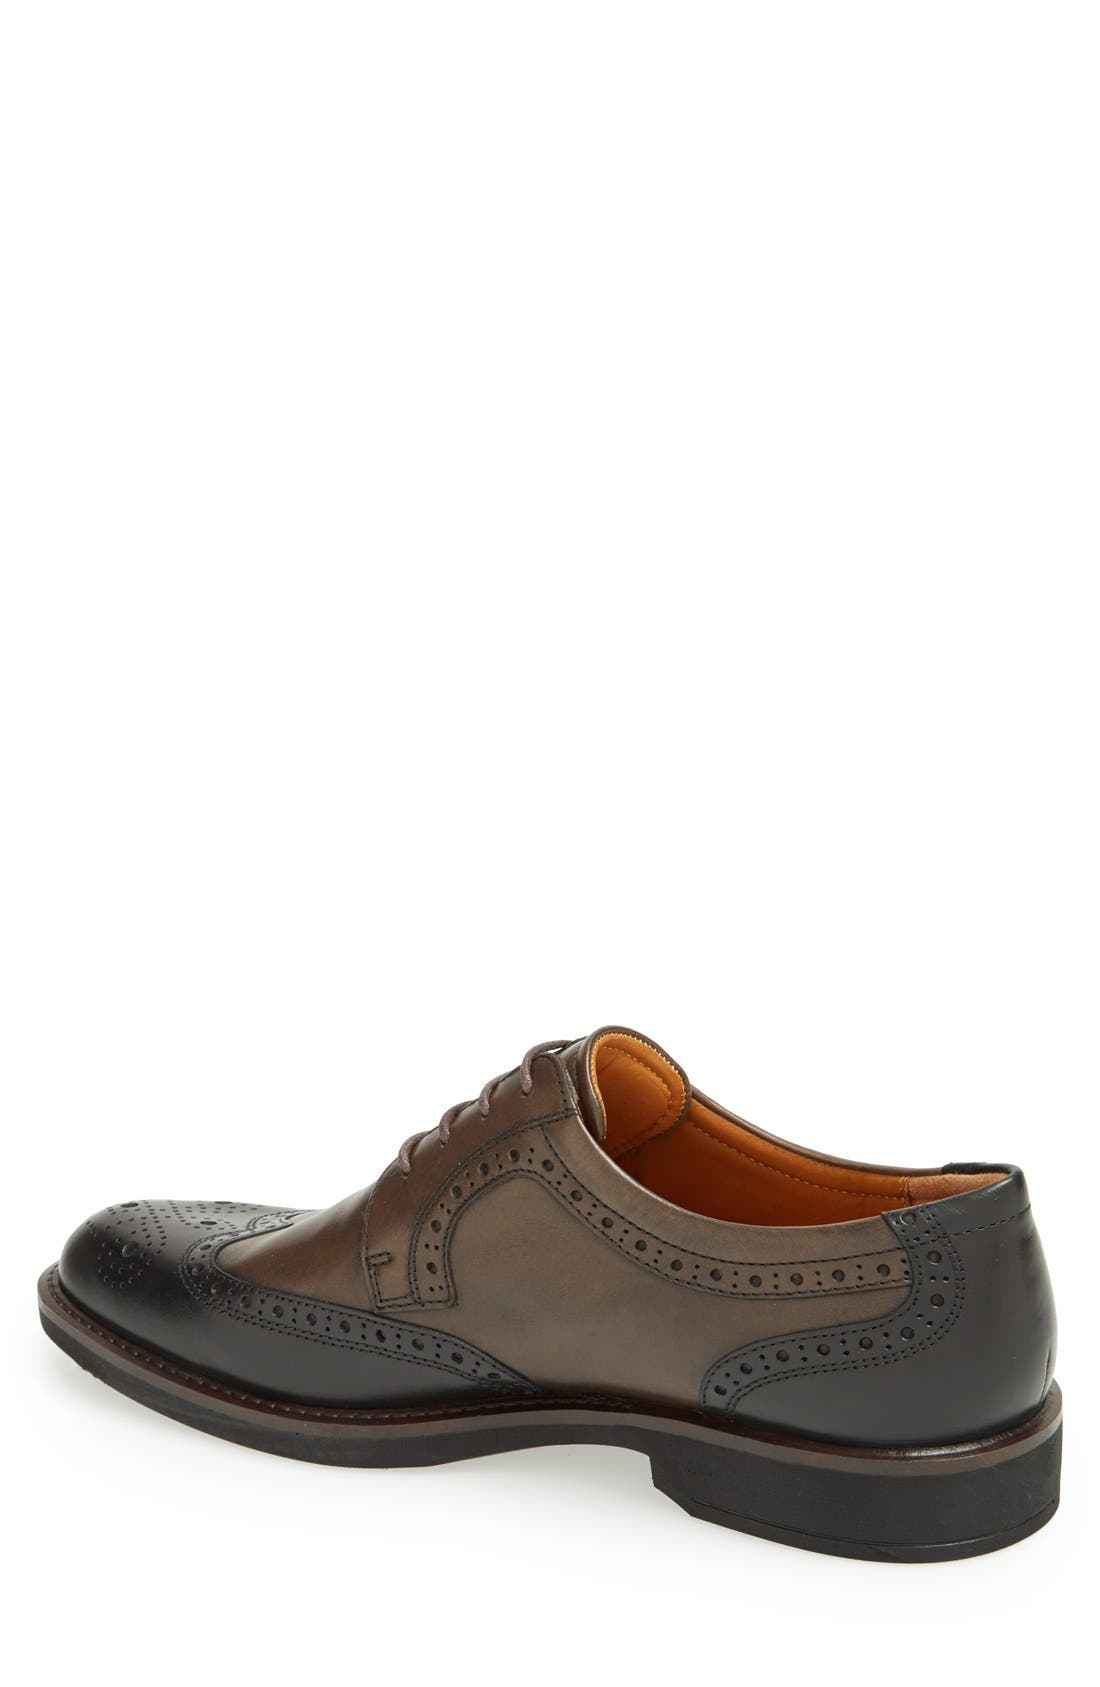 Alternate Image 2  - ECCO 'Biarritz' Oxford (Online Only)